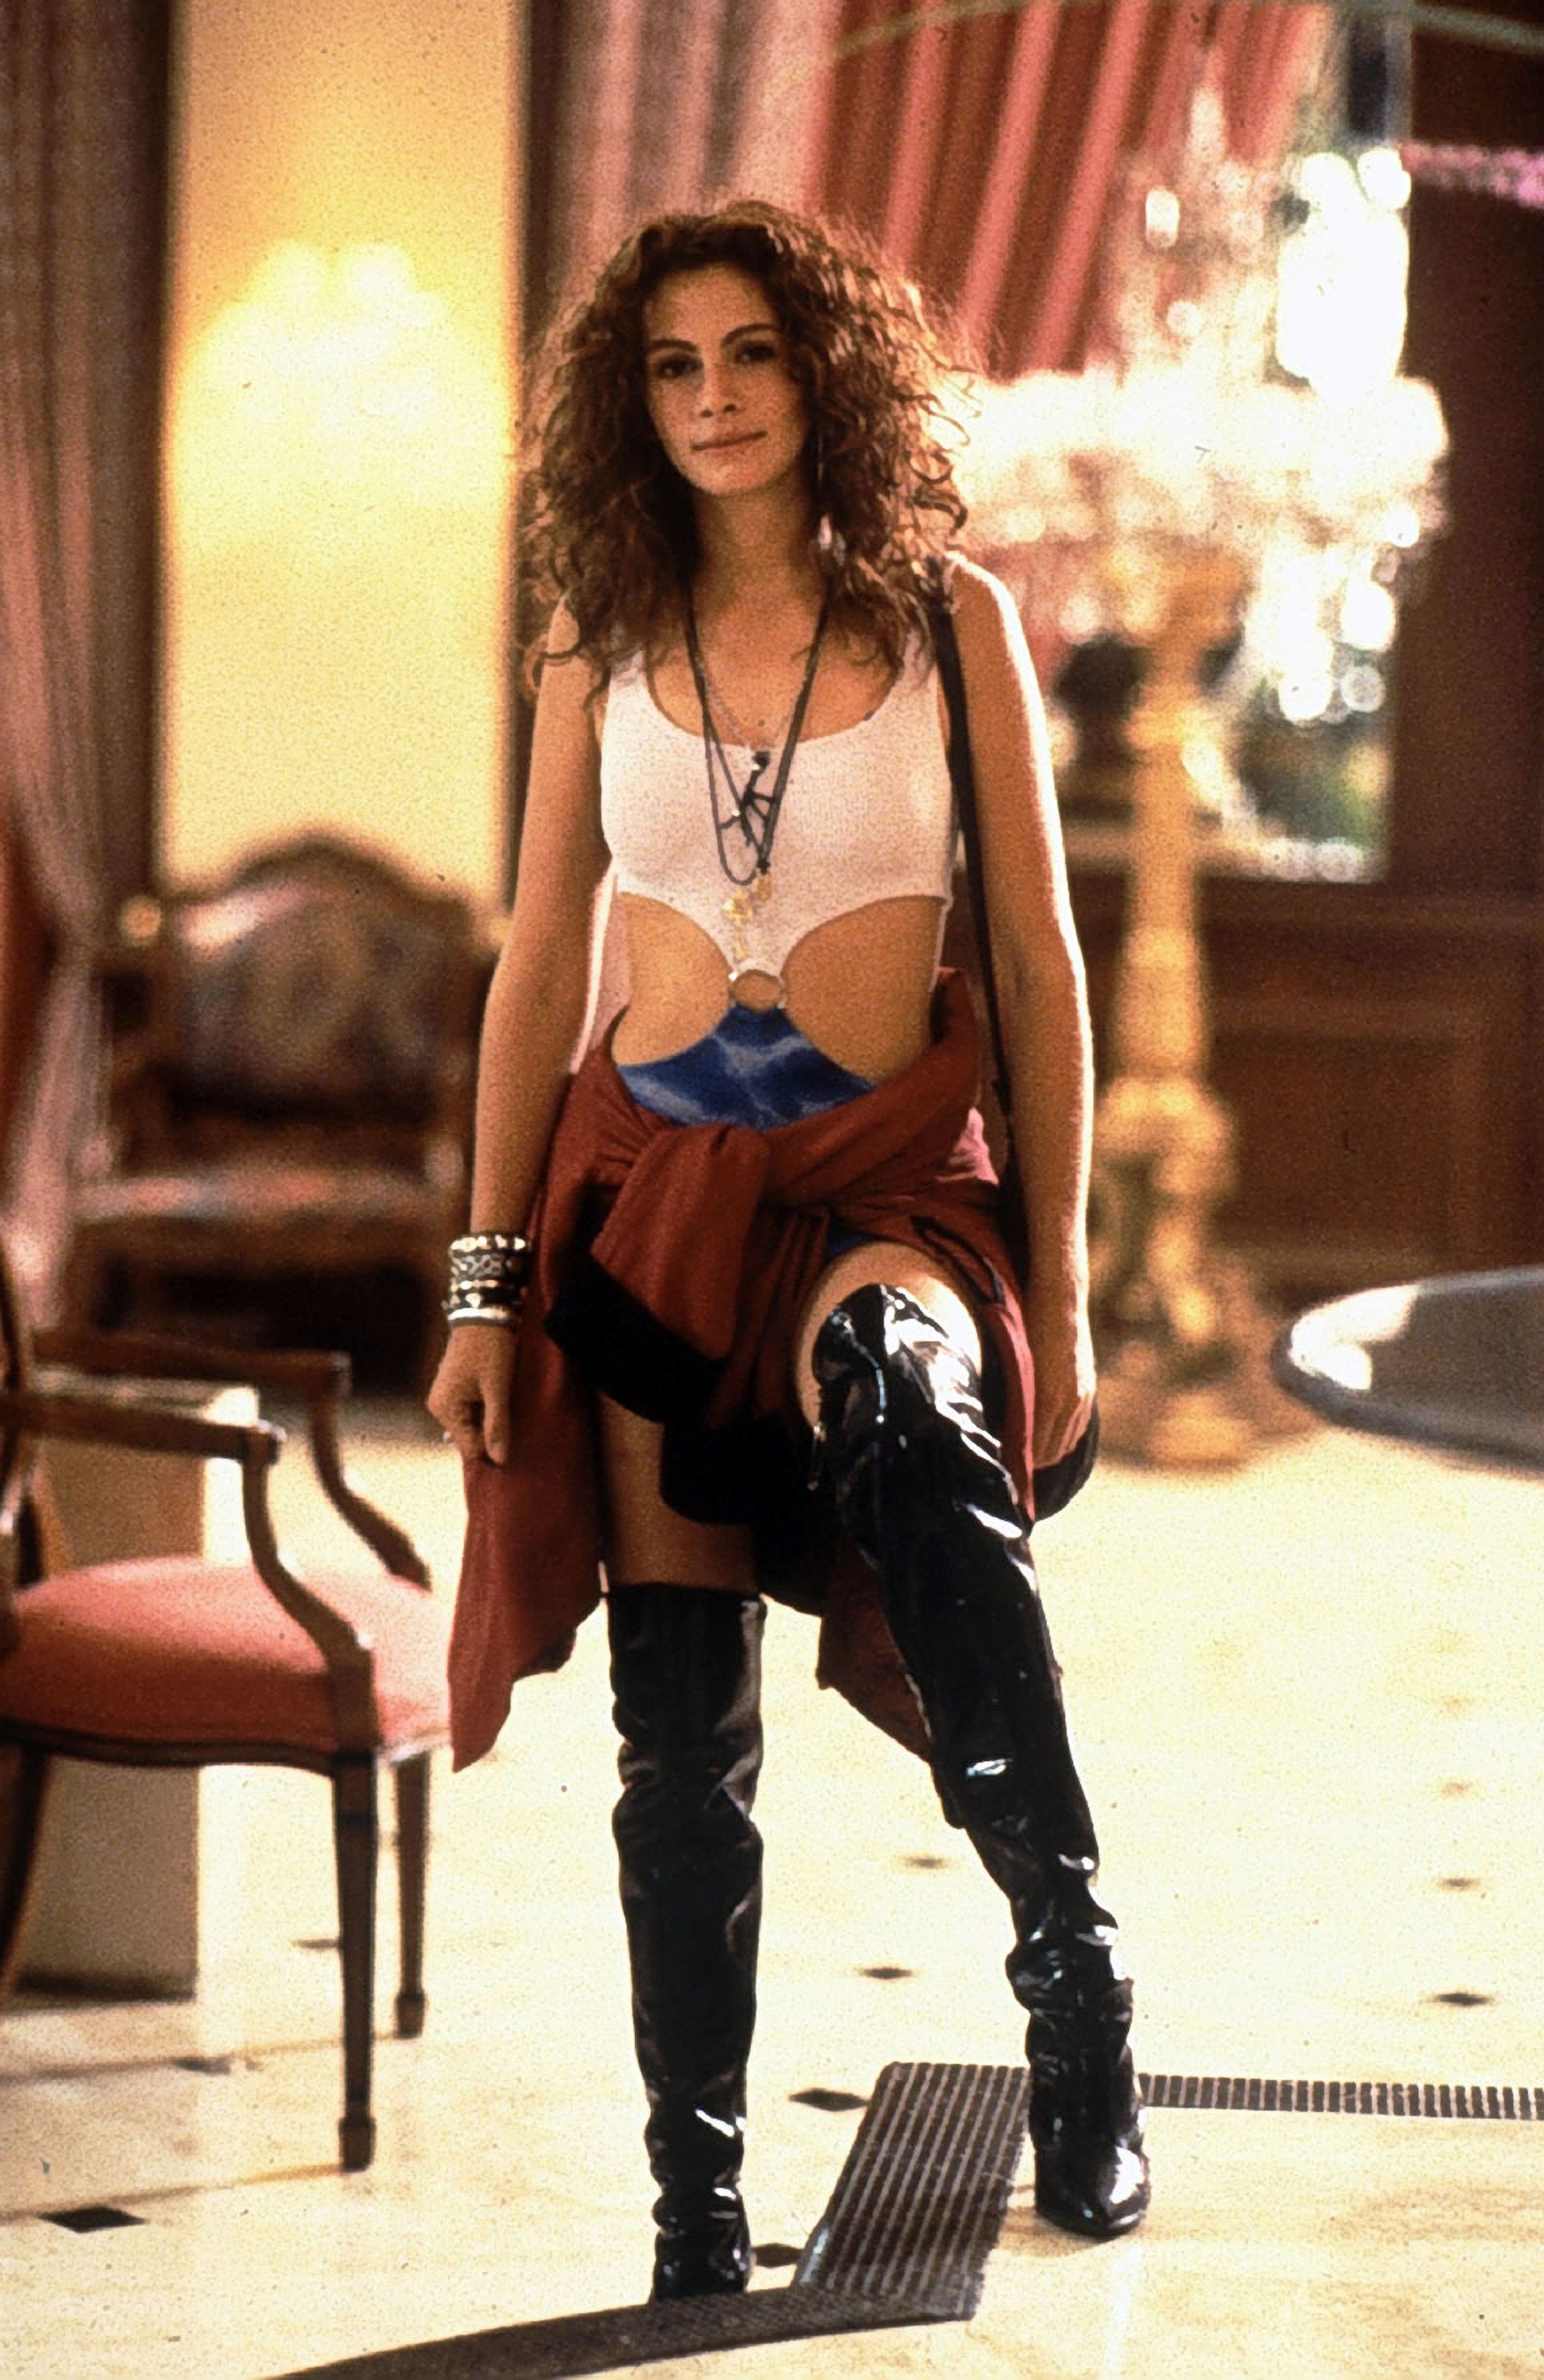 Pretty Woman Normalizes Something That Destroys Lives The